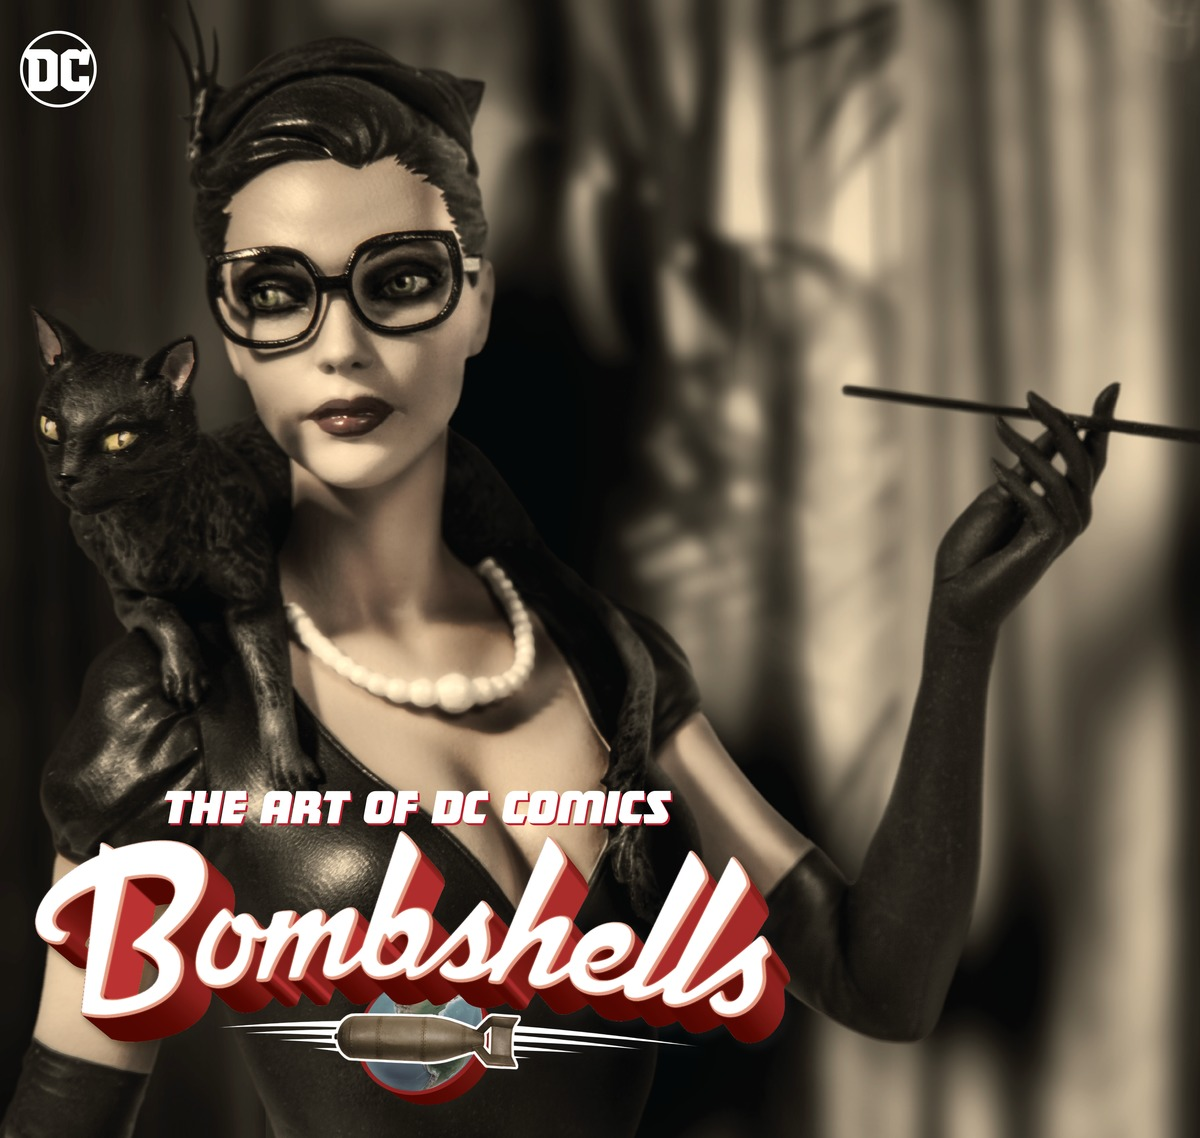 The Art of DC Comics Bombshells the art of battlefield 1